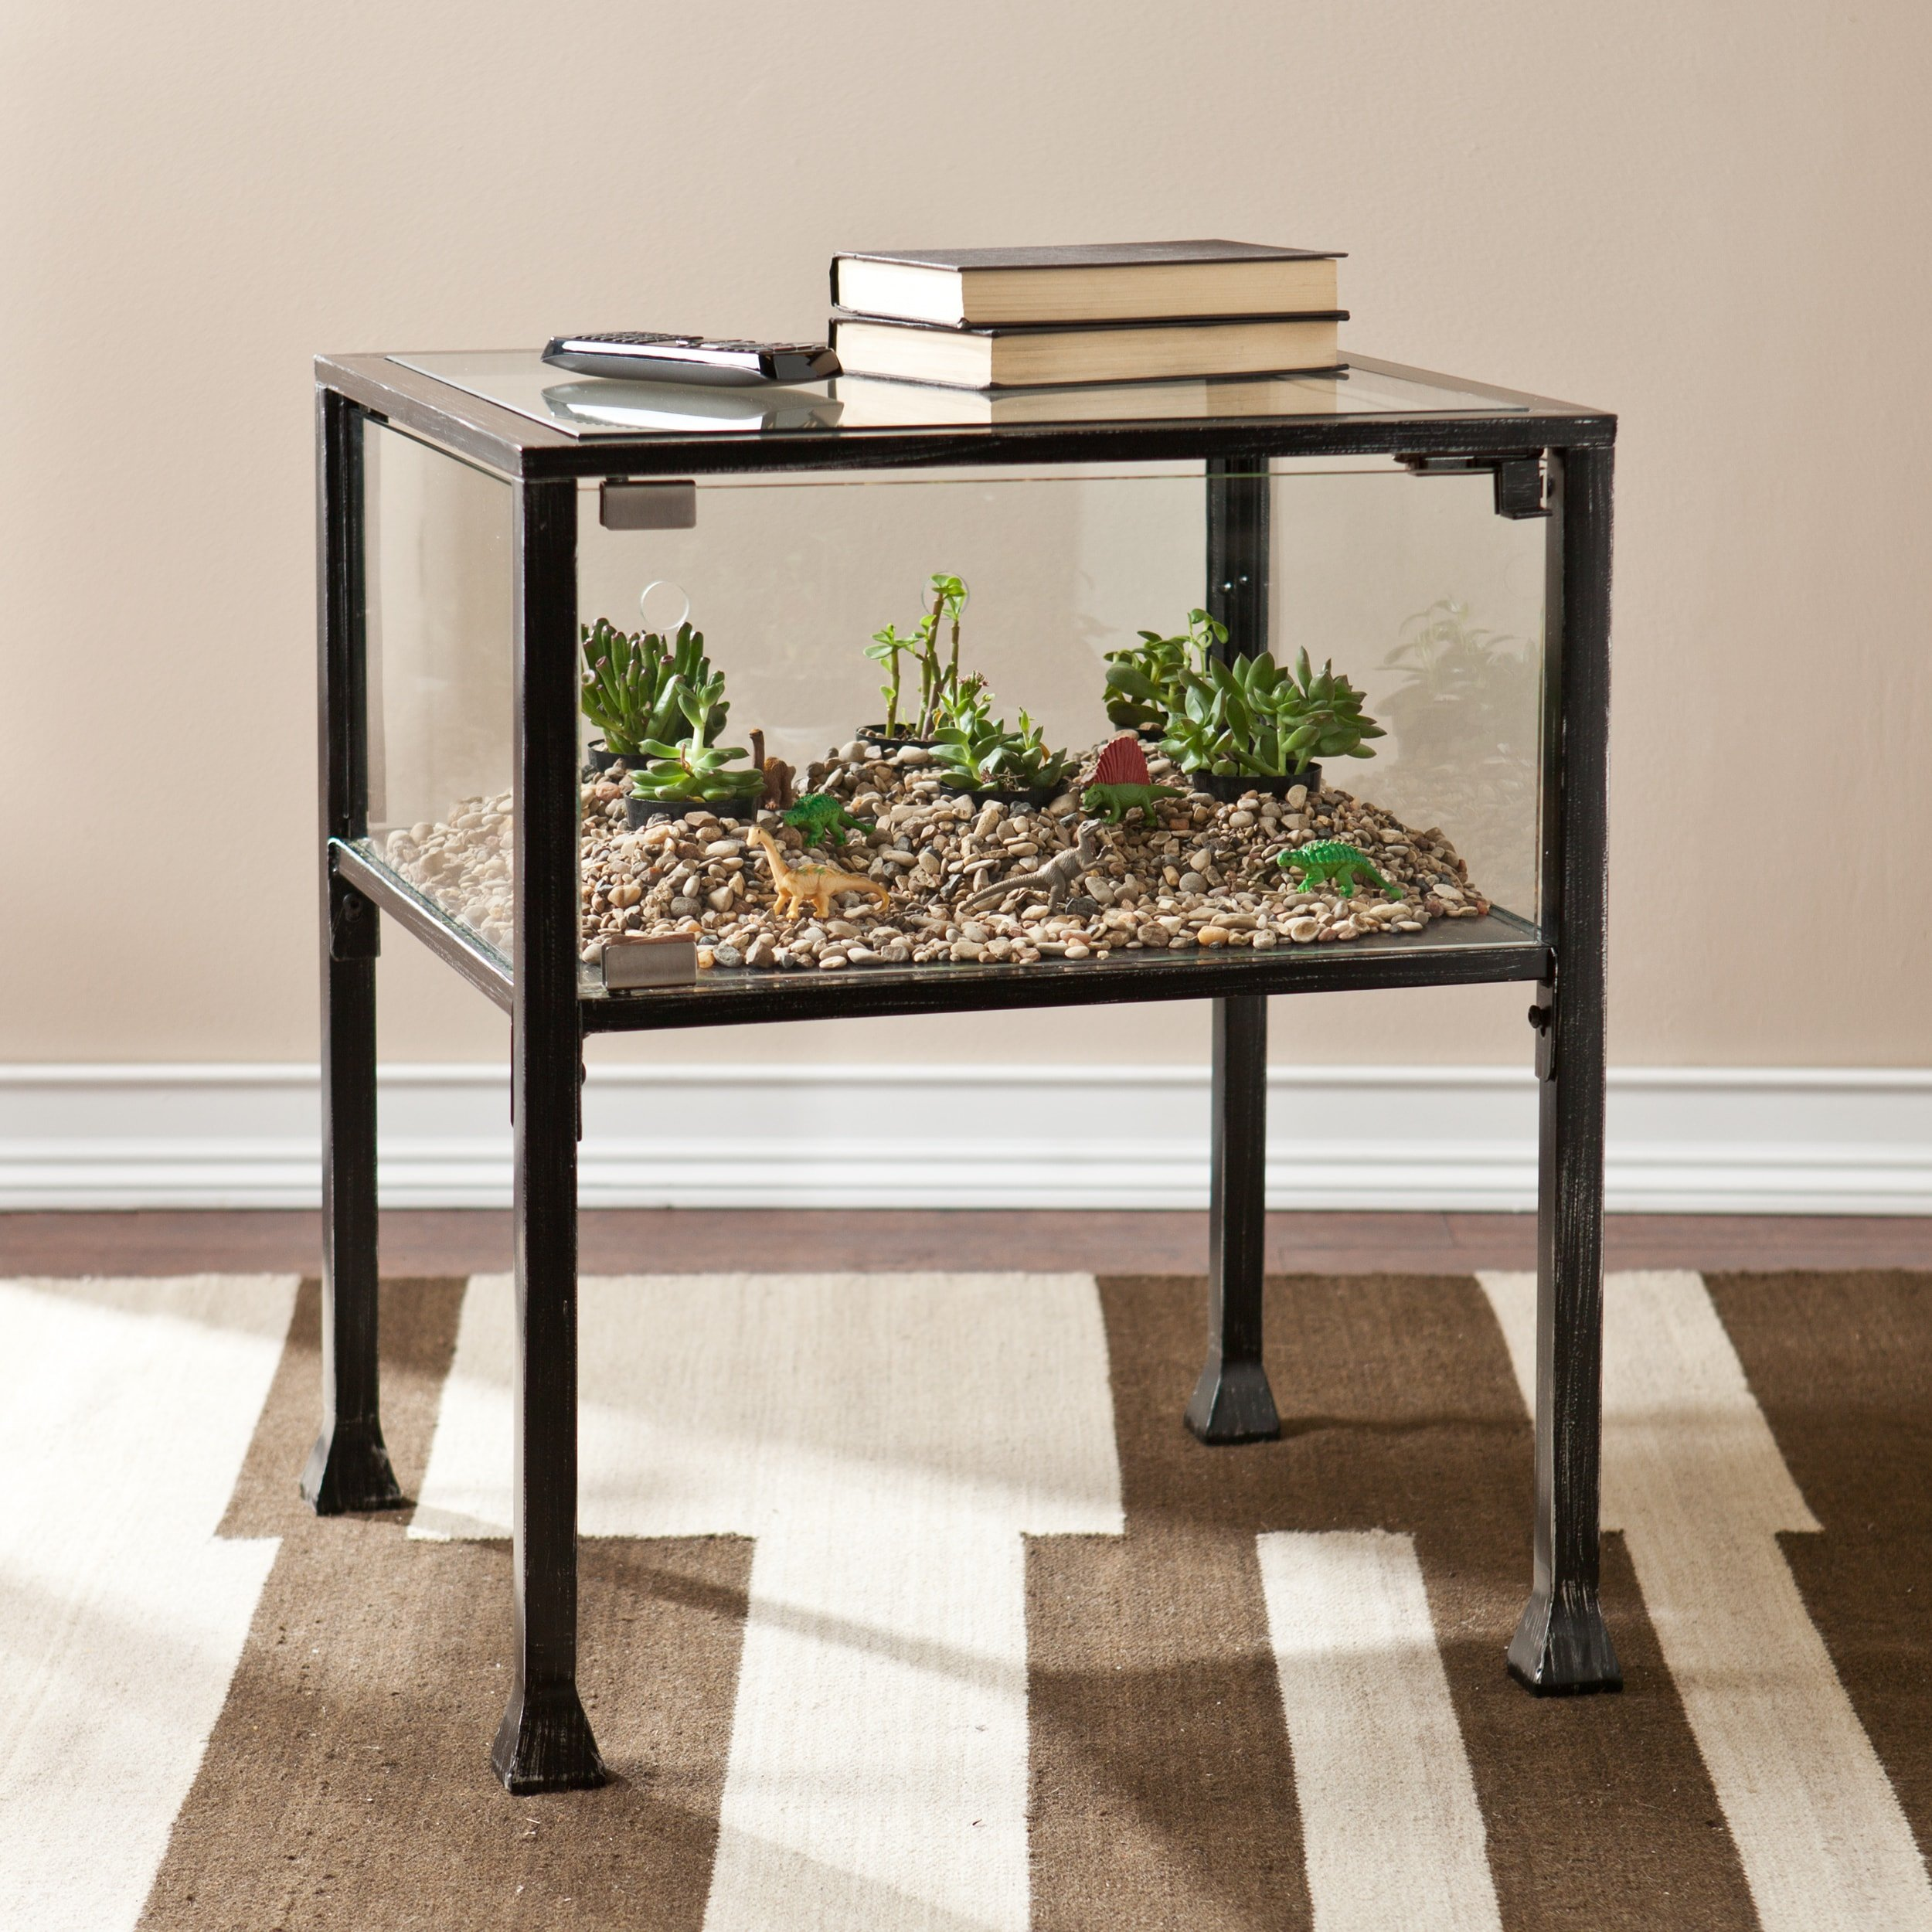 Harper Blvd Display/ Terrarium Side/ End Table by Harper Blvd